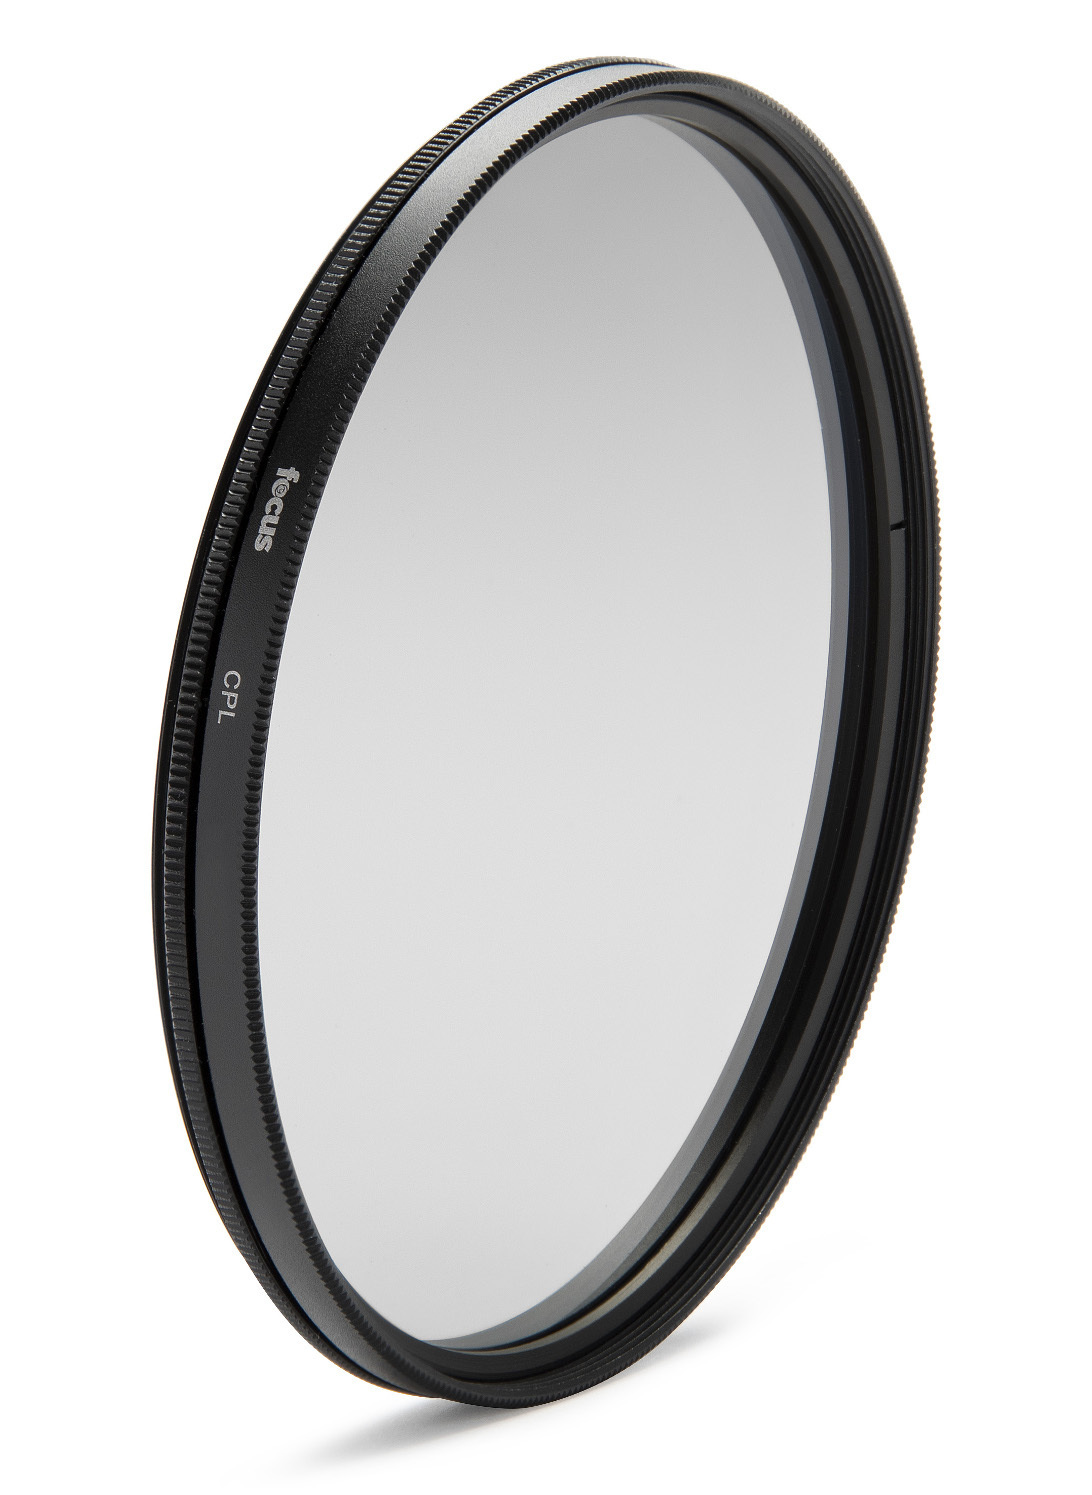 TheFocus Camera 43mm Circular Polarizing Filter is ideal for removing unwanted reflections from non-metallic surfaces such as water and glass. The filter also improves color saturation\, clarity and contrast\, such as in blue skies and white clouds. This filter will not affect the overall color balance of a shot\, and will provide protection for your lens while shooting.?